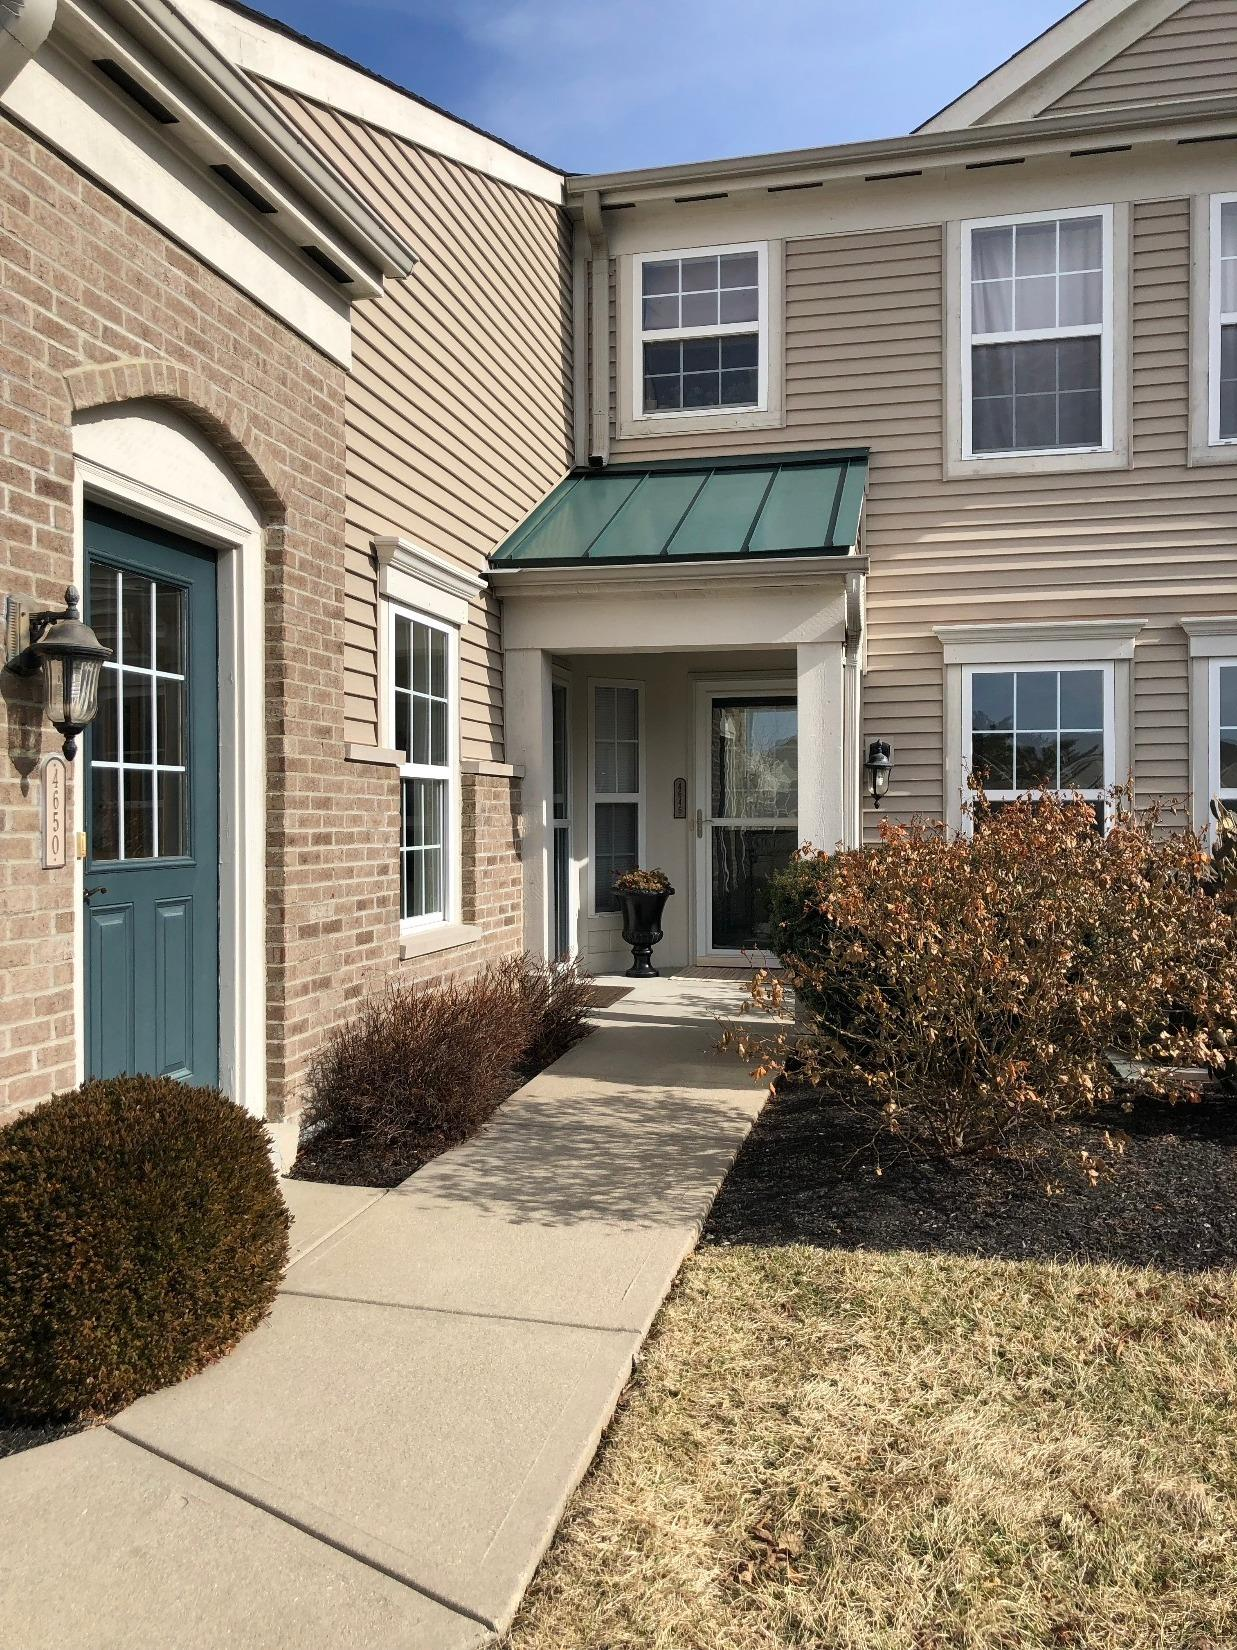 No Steps! Open floor plan. Large master bath with walk-in closet. 1 Car Garage attached. Great view from the deck to the woods.Community has all the amenities you could want. Walking trails, Pond, Club House/Fitness Center, Pool, Snow removal, landscaping and lawn care.